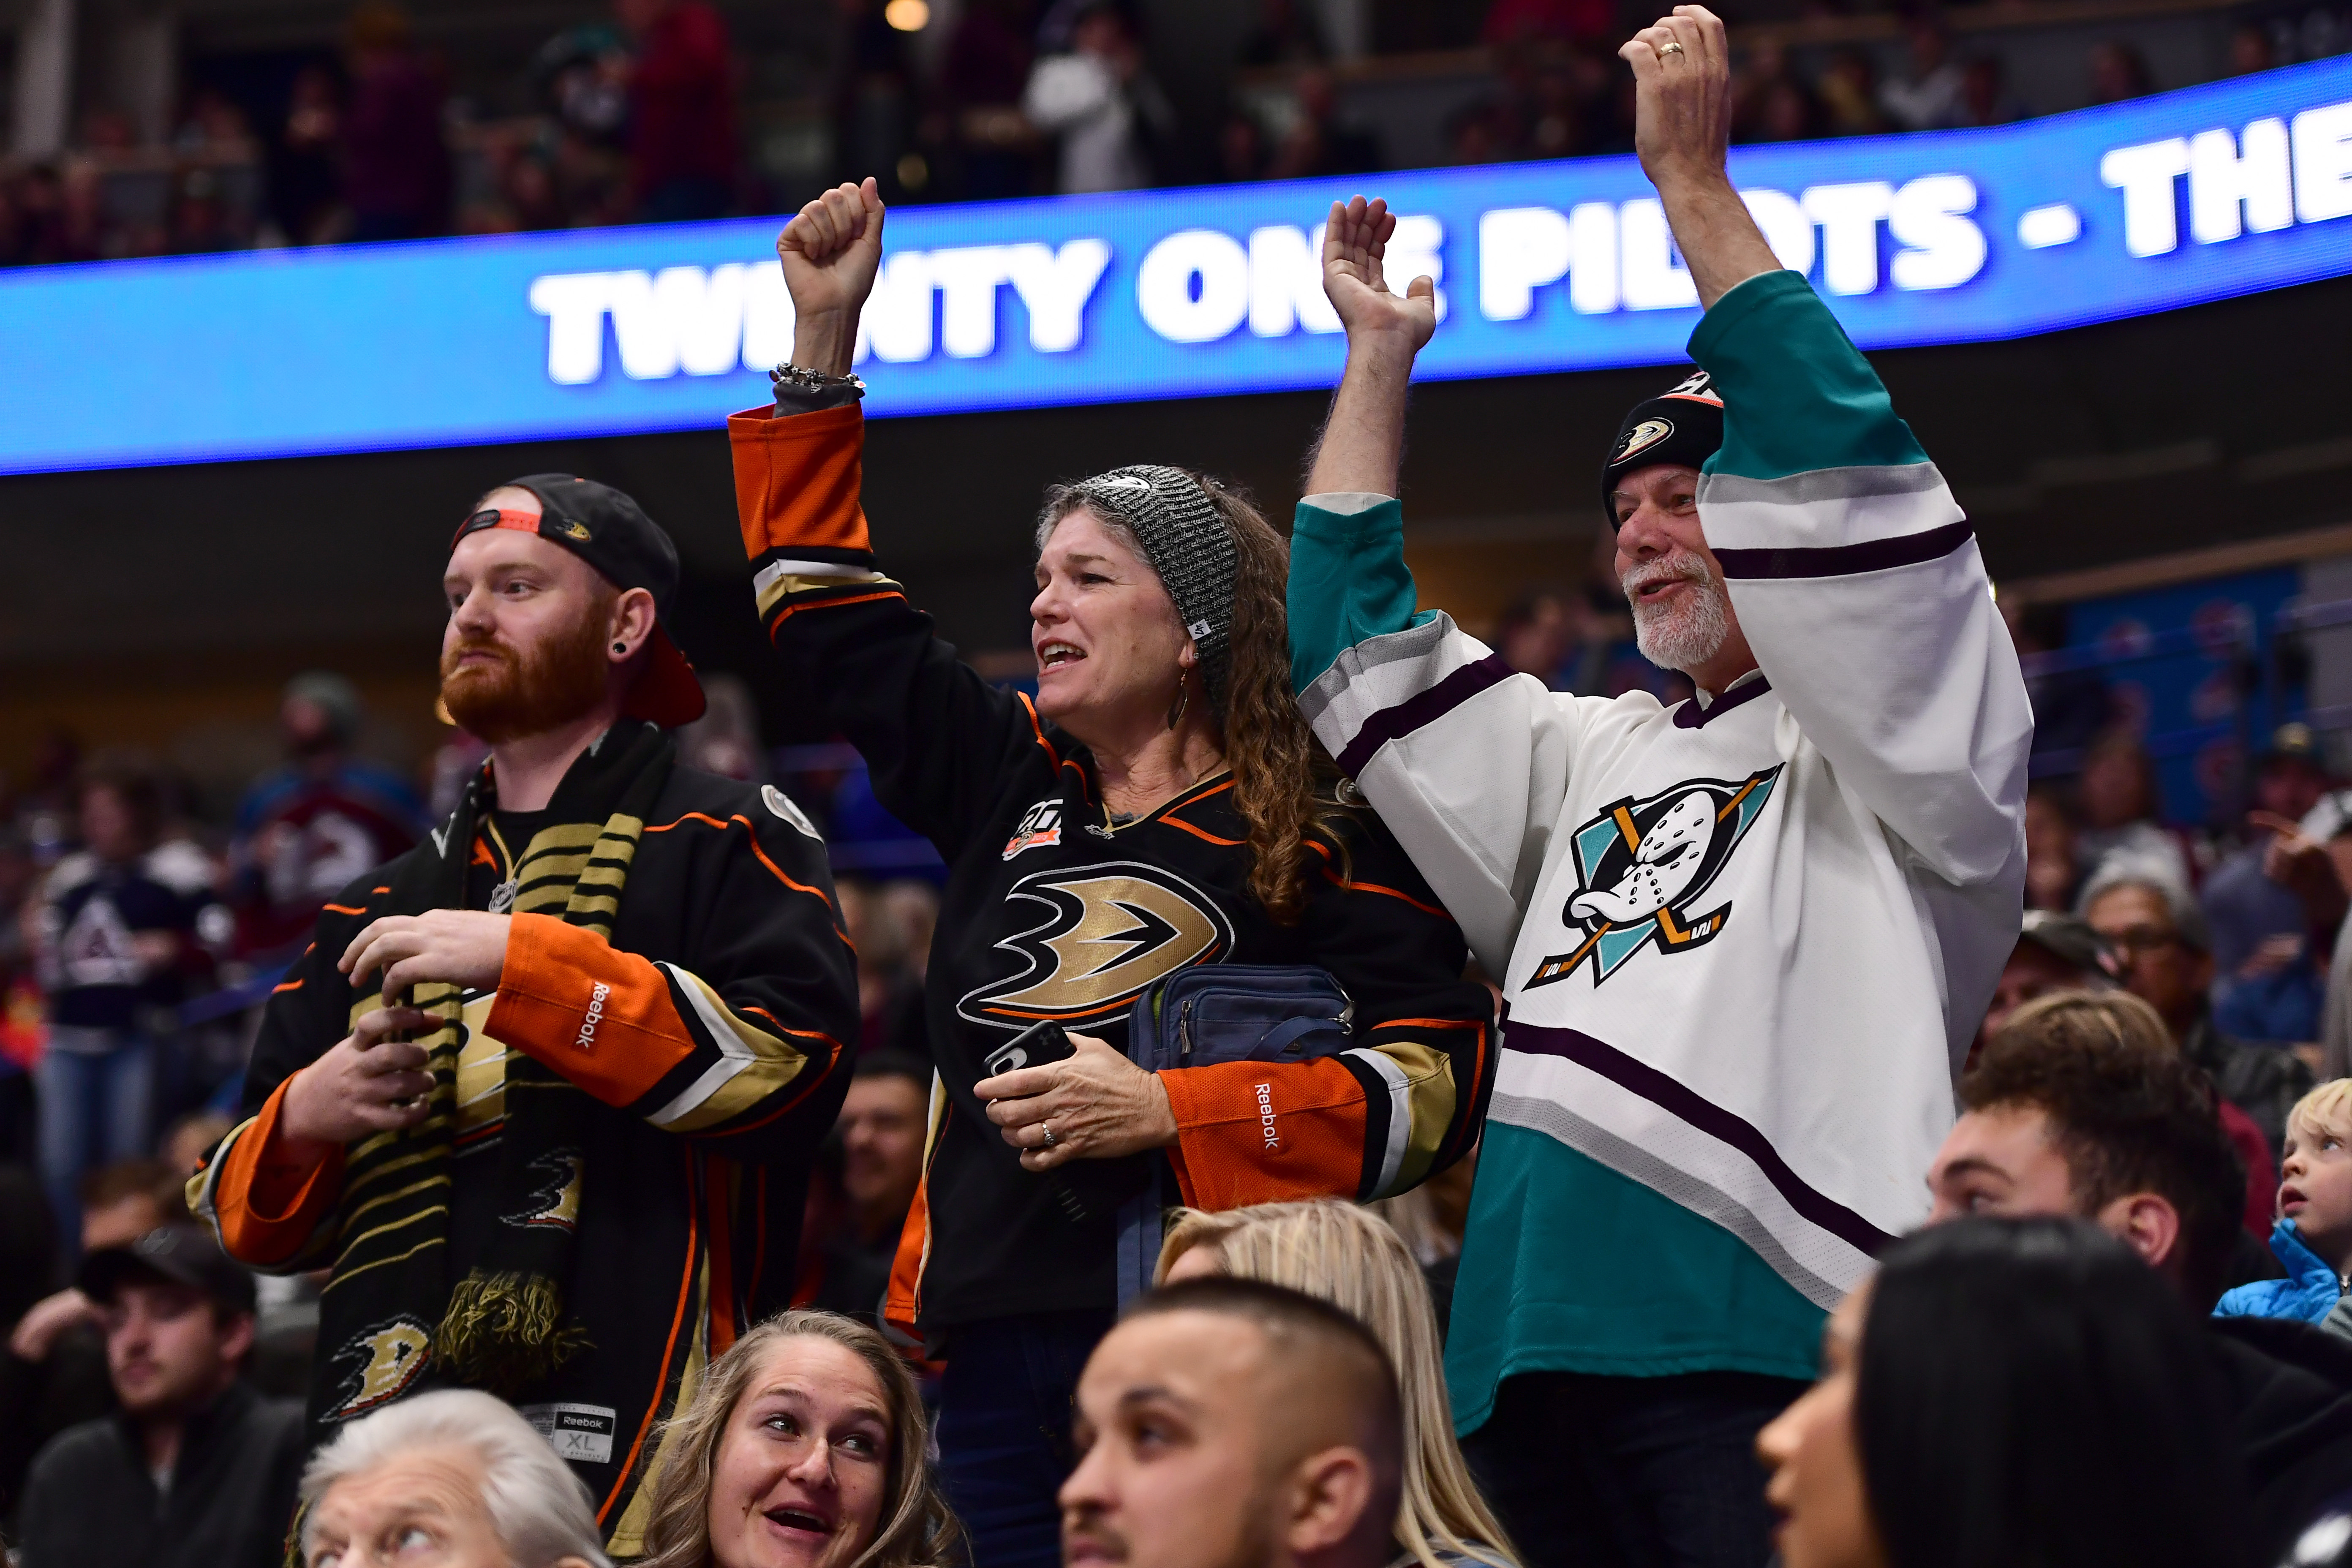 Oct 26, 2019; Denver, CO, USA; Anaheim Ducks fans celebrate a score in the first period against the Colorado Avalanche at the Pepsi Center.